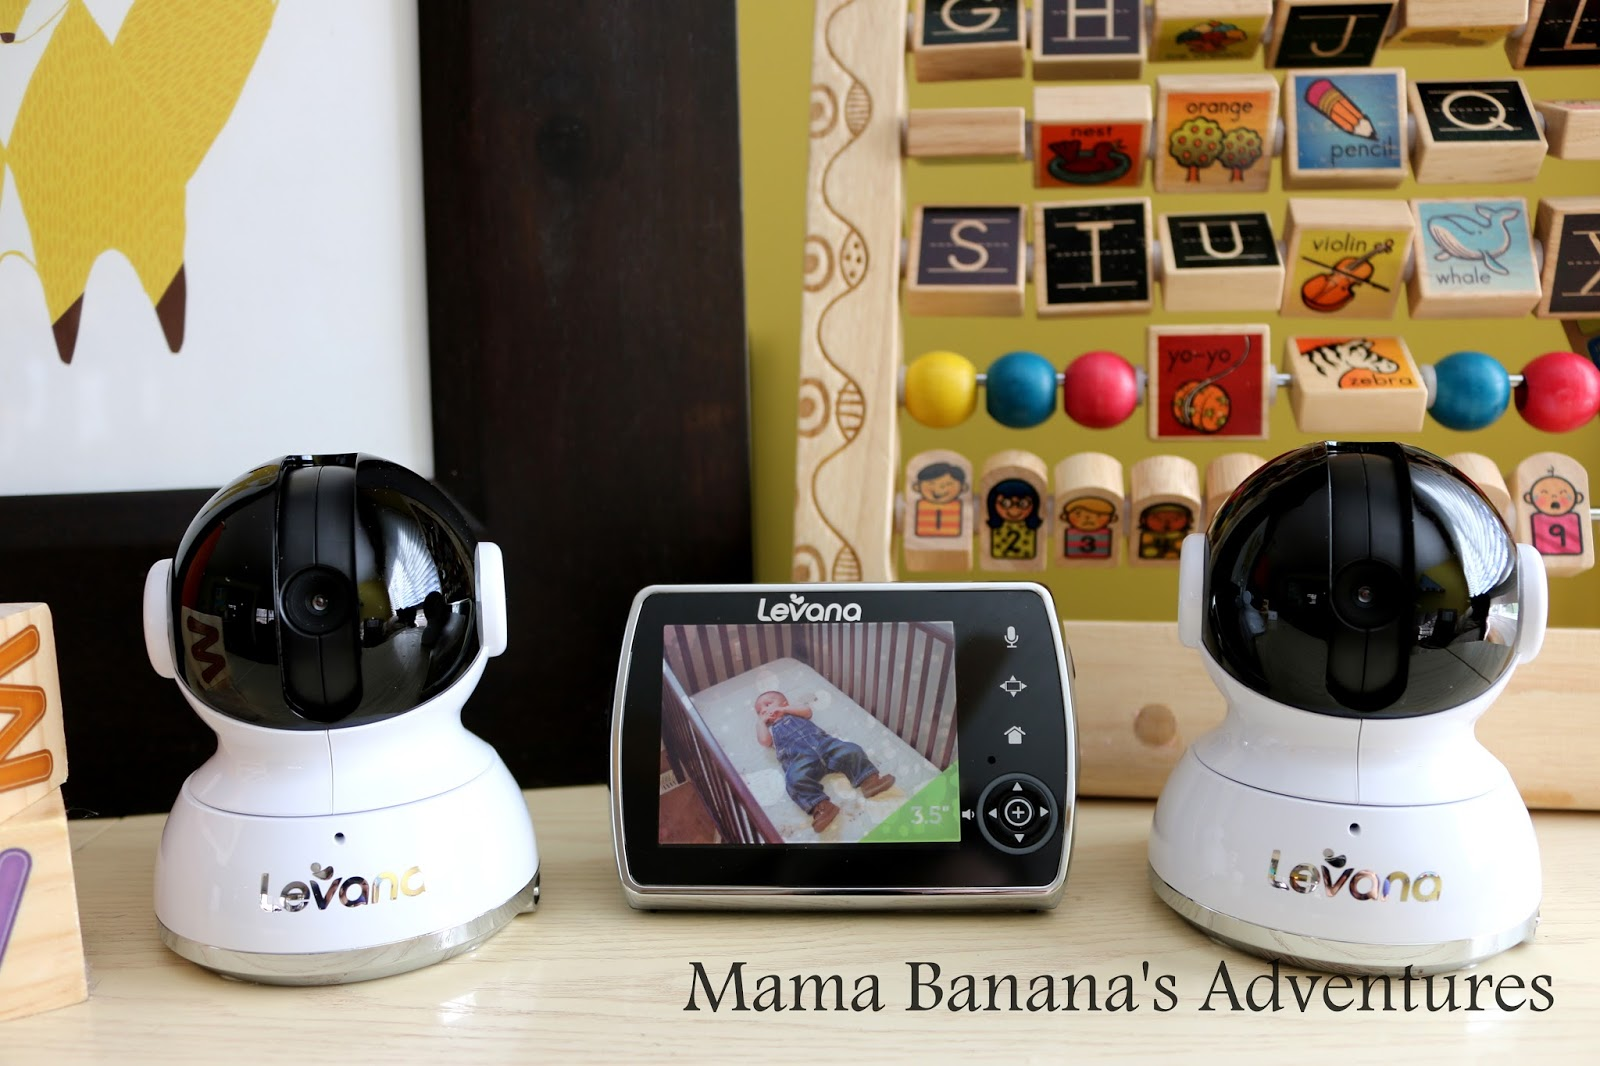 levana keera ptz baby video monitor with 2 cameras review mama banana 39 s adventures. Black Bedroom Furniture Sets. Home Design Ideas